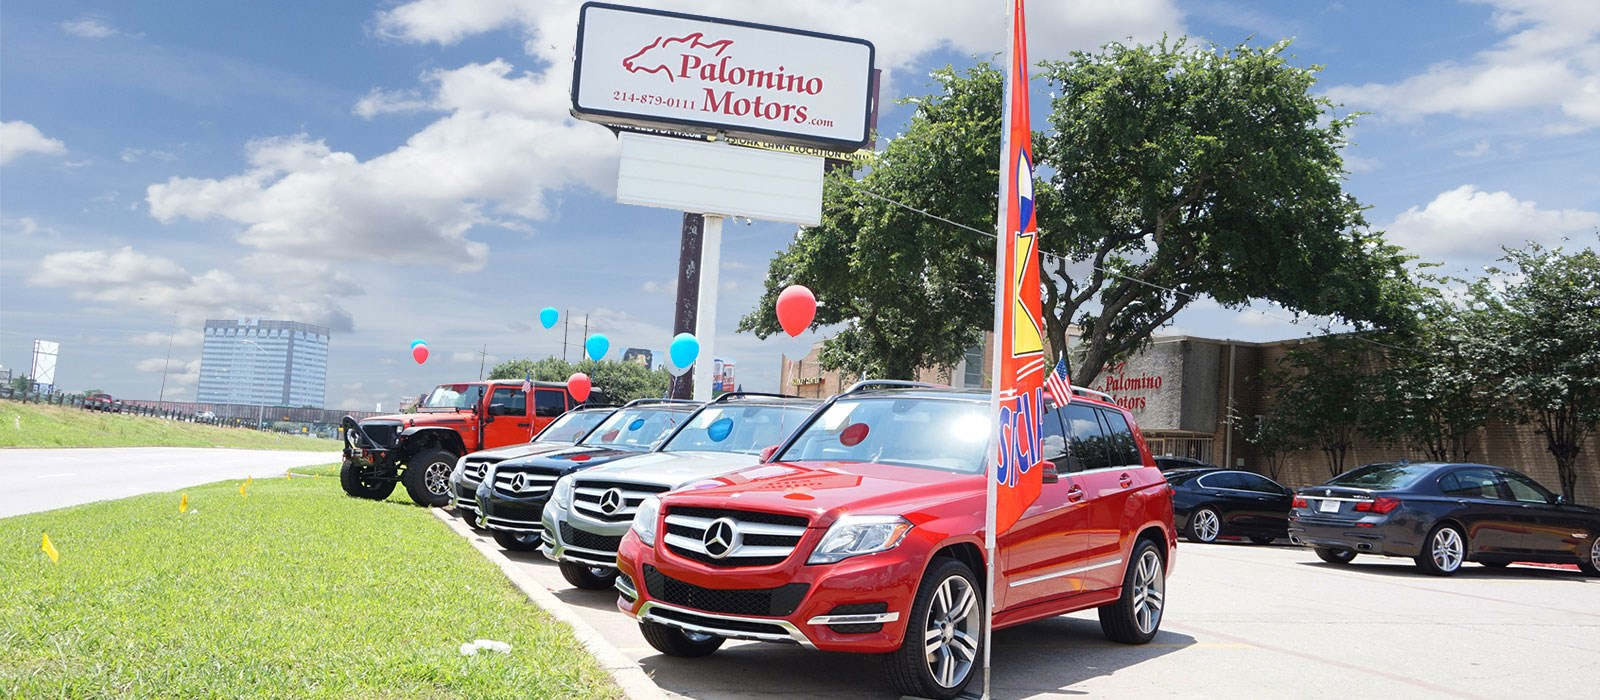 Used Luxury Cars Dallas TX | Used Cars Dallas TX | Palomino Motors